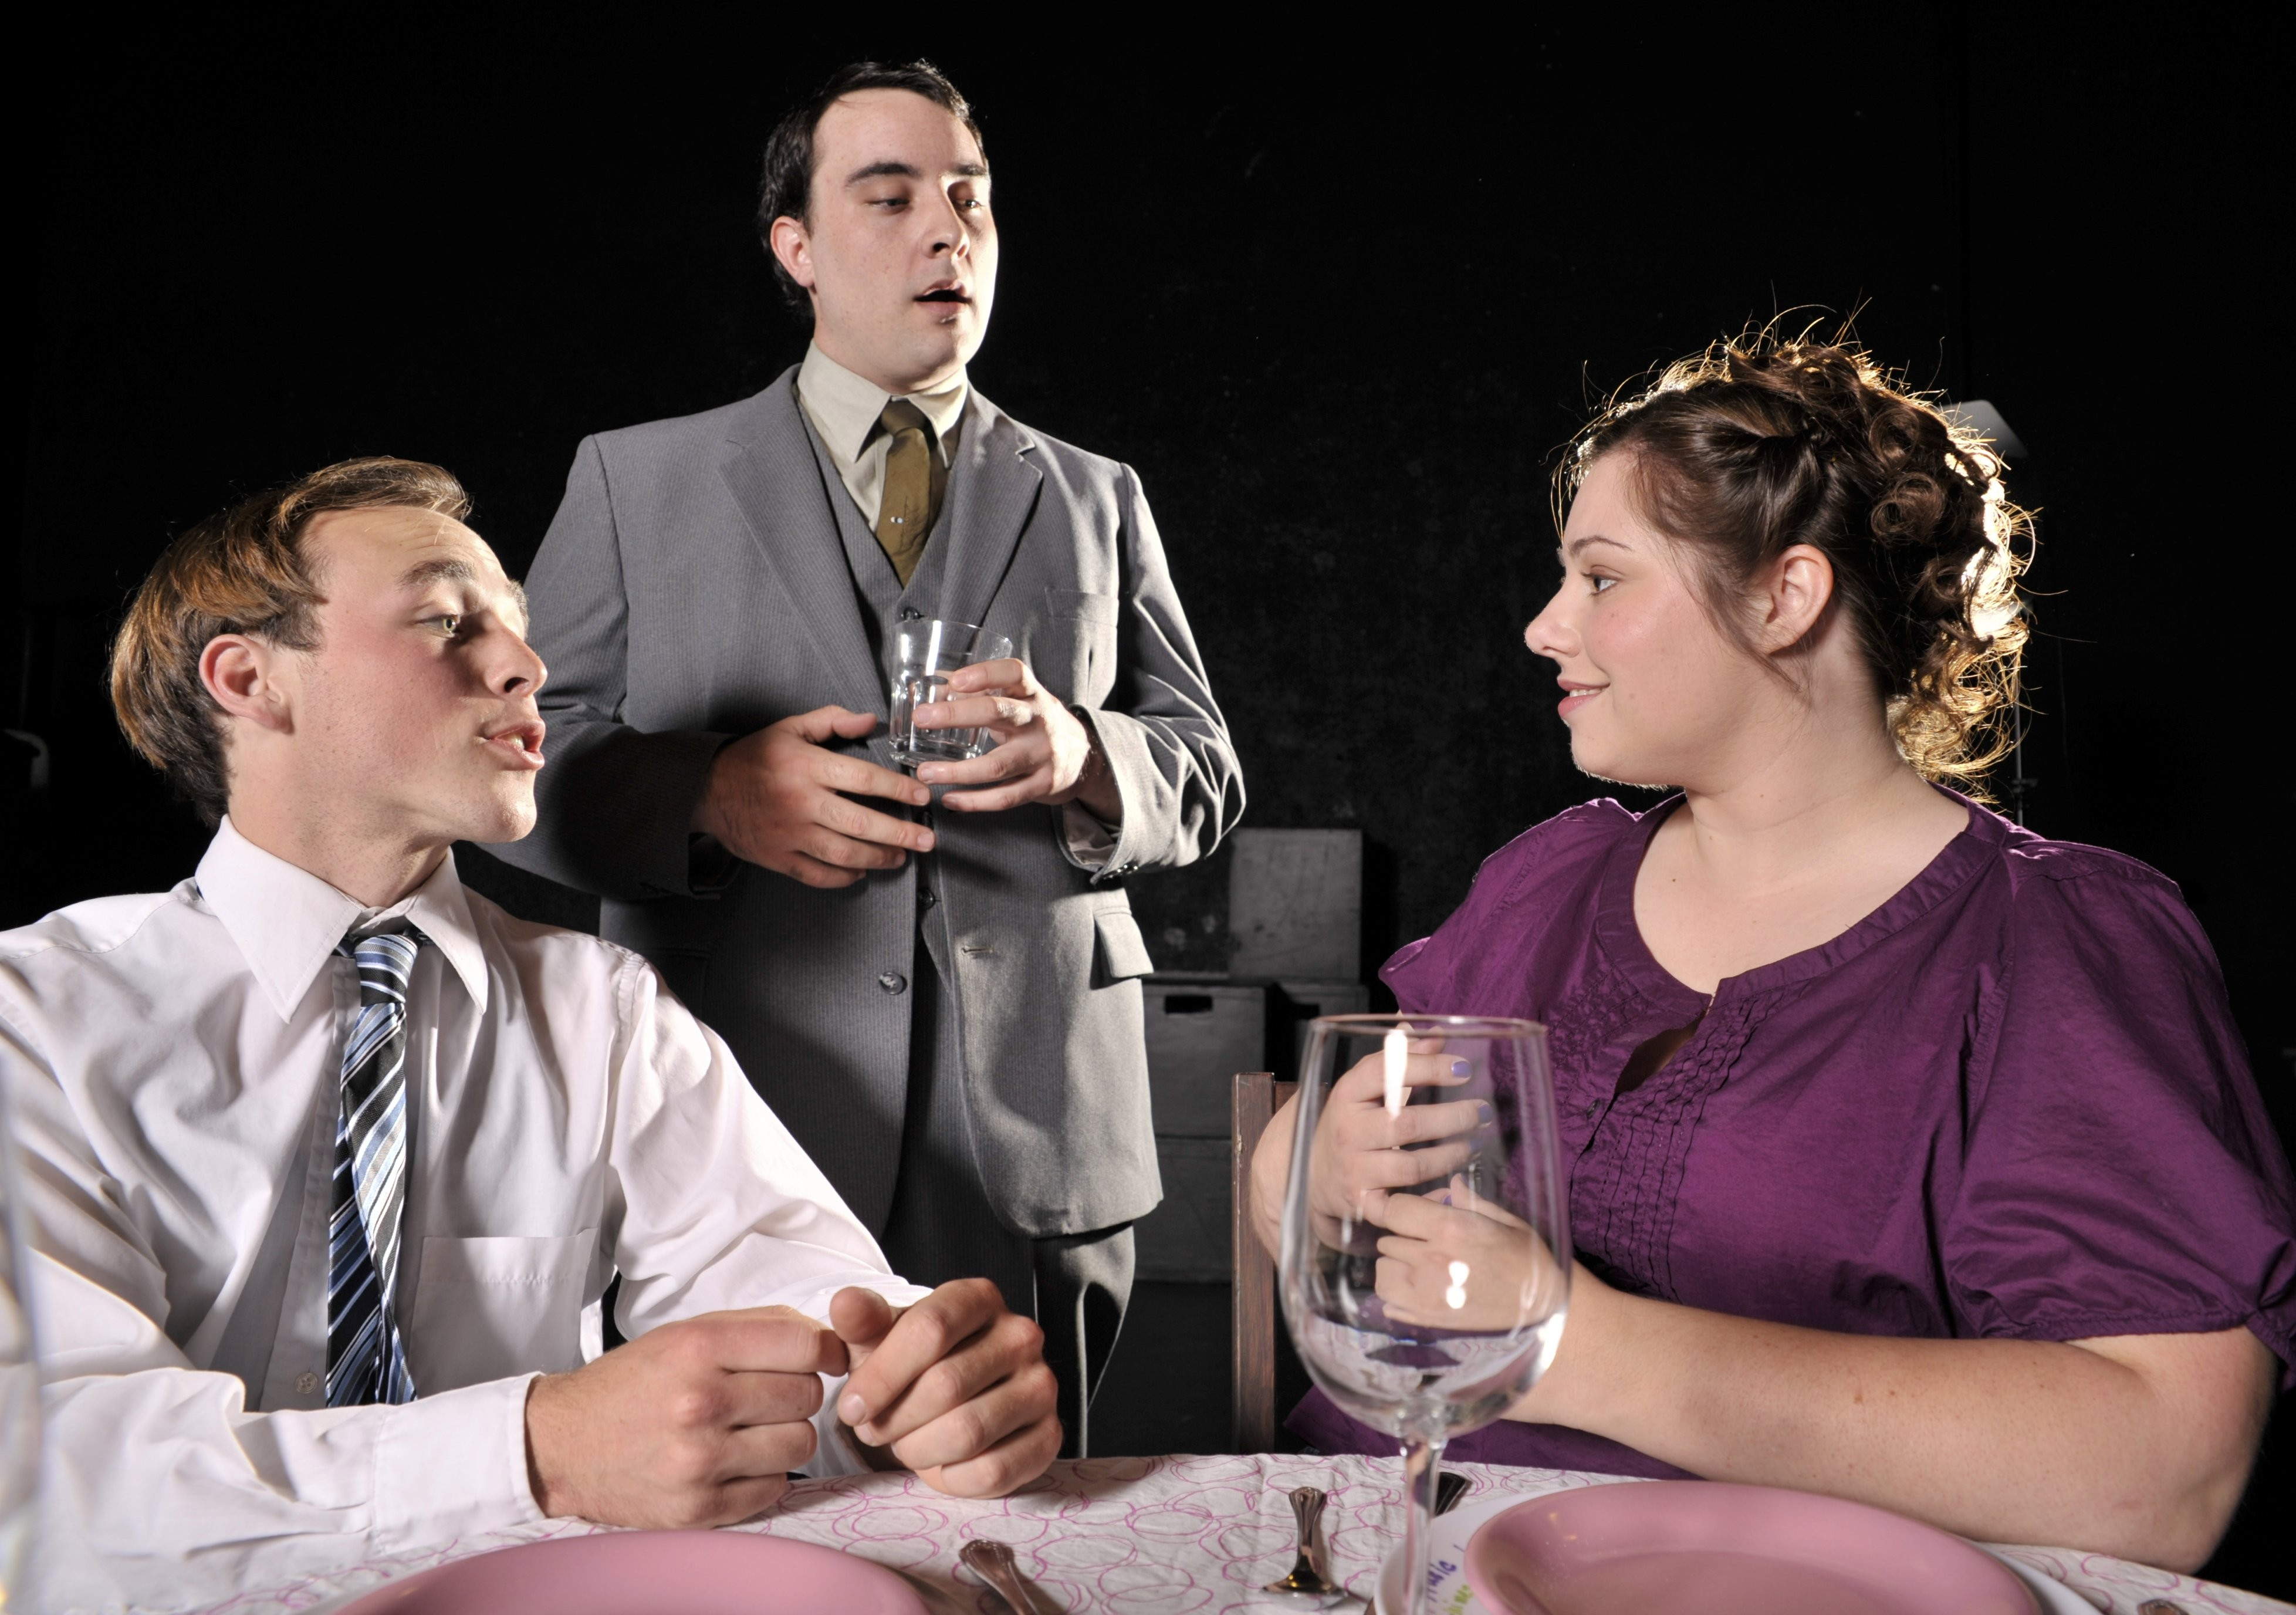 Kyle Ryan as Tom, Brandon McDaniel as Carter, Colleen Lacy as Helen in the HSU's production of Fat Pig - COURTESY OF HSU DEPT. OF THEATRE, FILM & DANCE